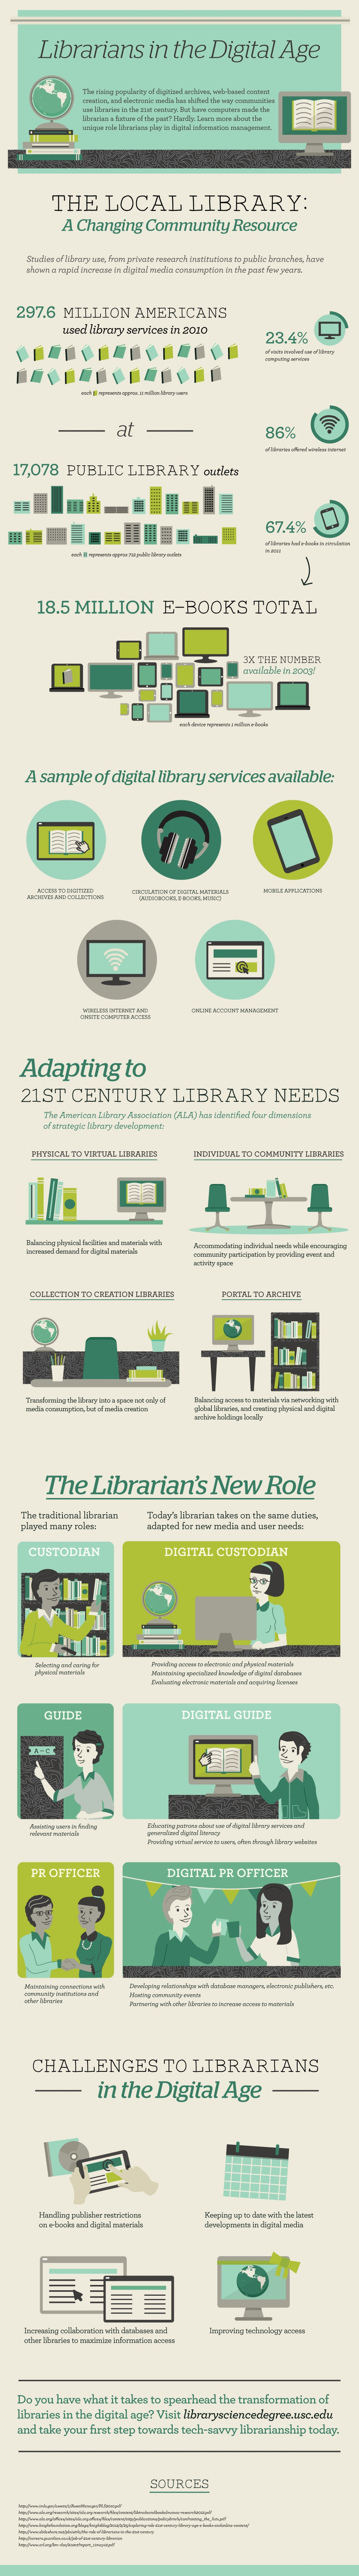 The-Role-of-Librarians-In-The-Digital-Age-Infographic